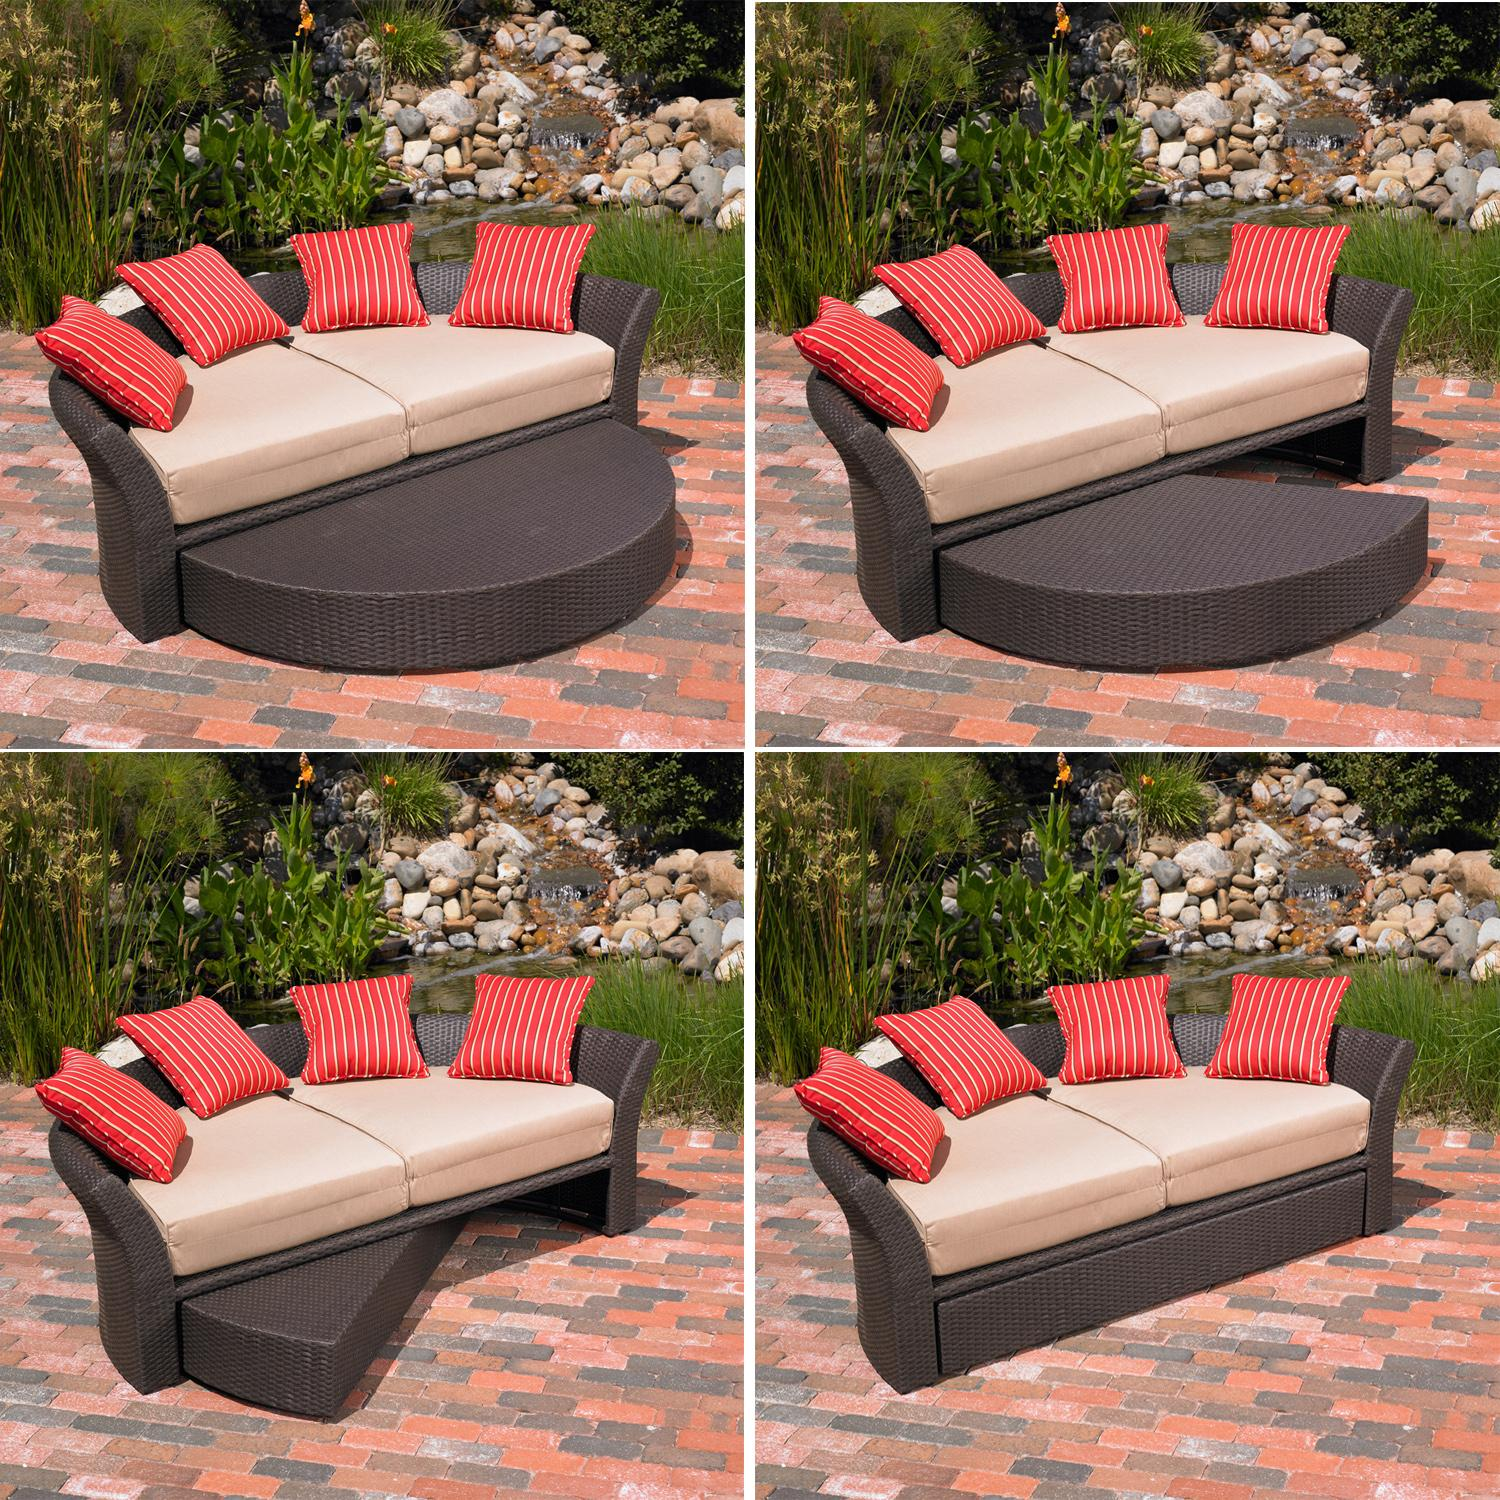 Amazon Mission Hills Corinth Daybed Sunbrella Outdoor Patio Round Brown